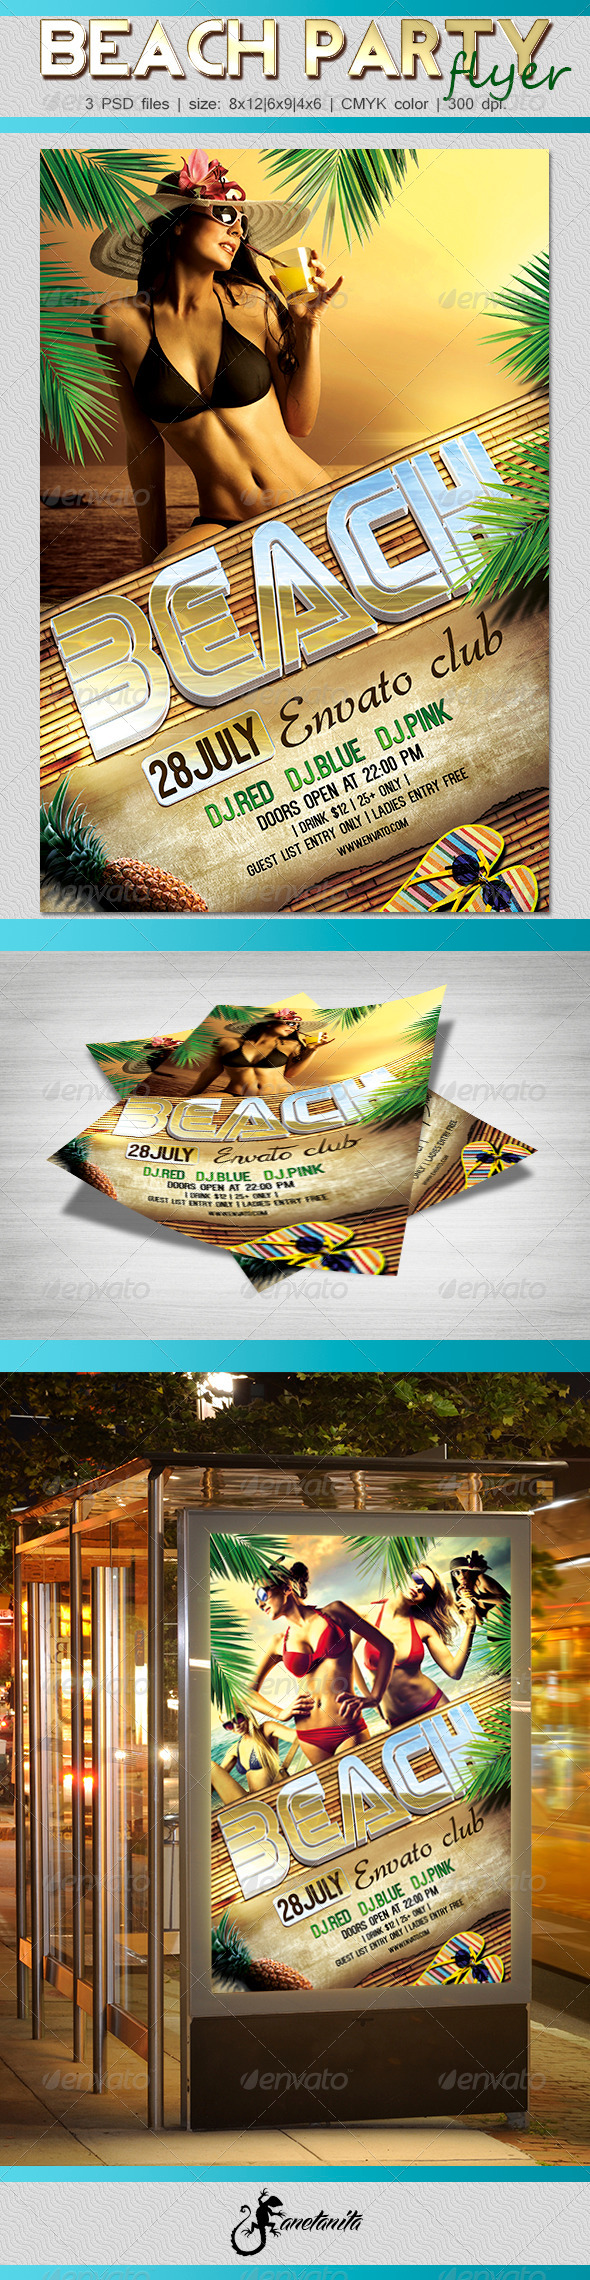 GraphicRiver Beach Party Flyer 7724261